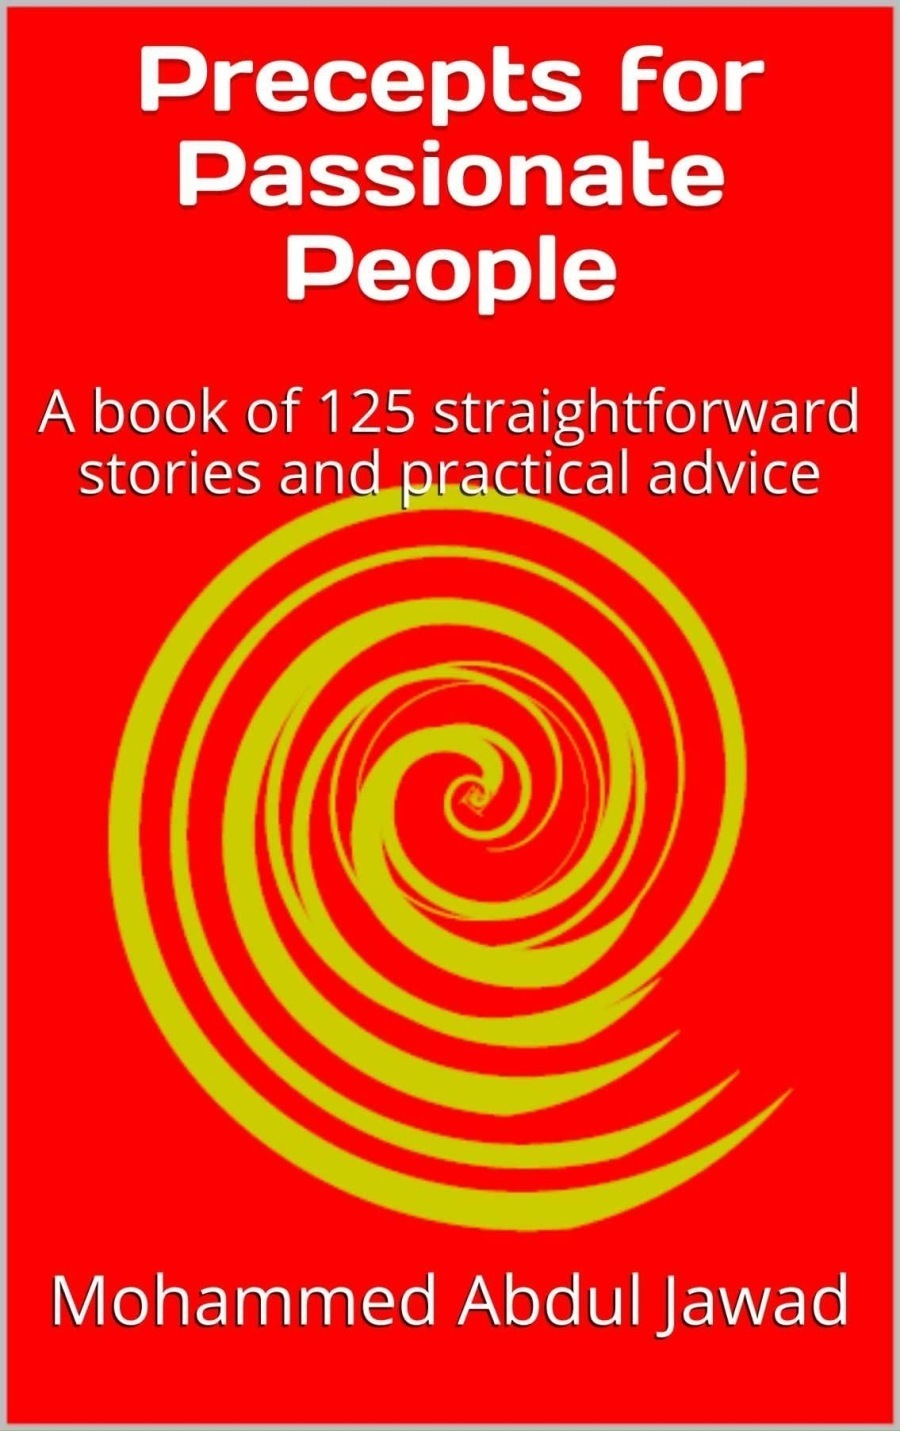 FREE BOOK PROMOTION: 'Precepts for Passionate People'Precepts for Passionate People  A book of 125 straightforward stories and pgactical advice  Mohammed Abdul Jawad